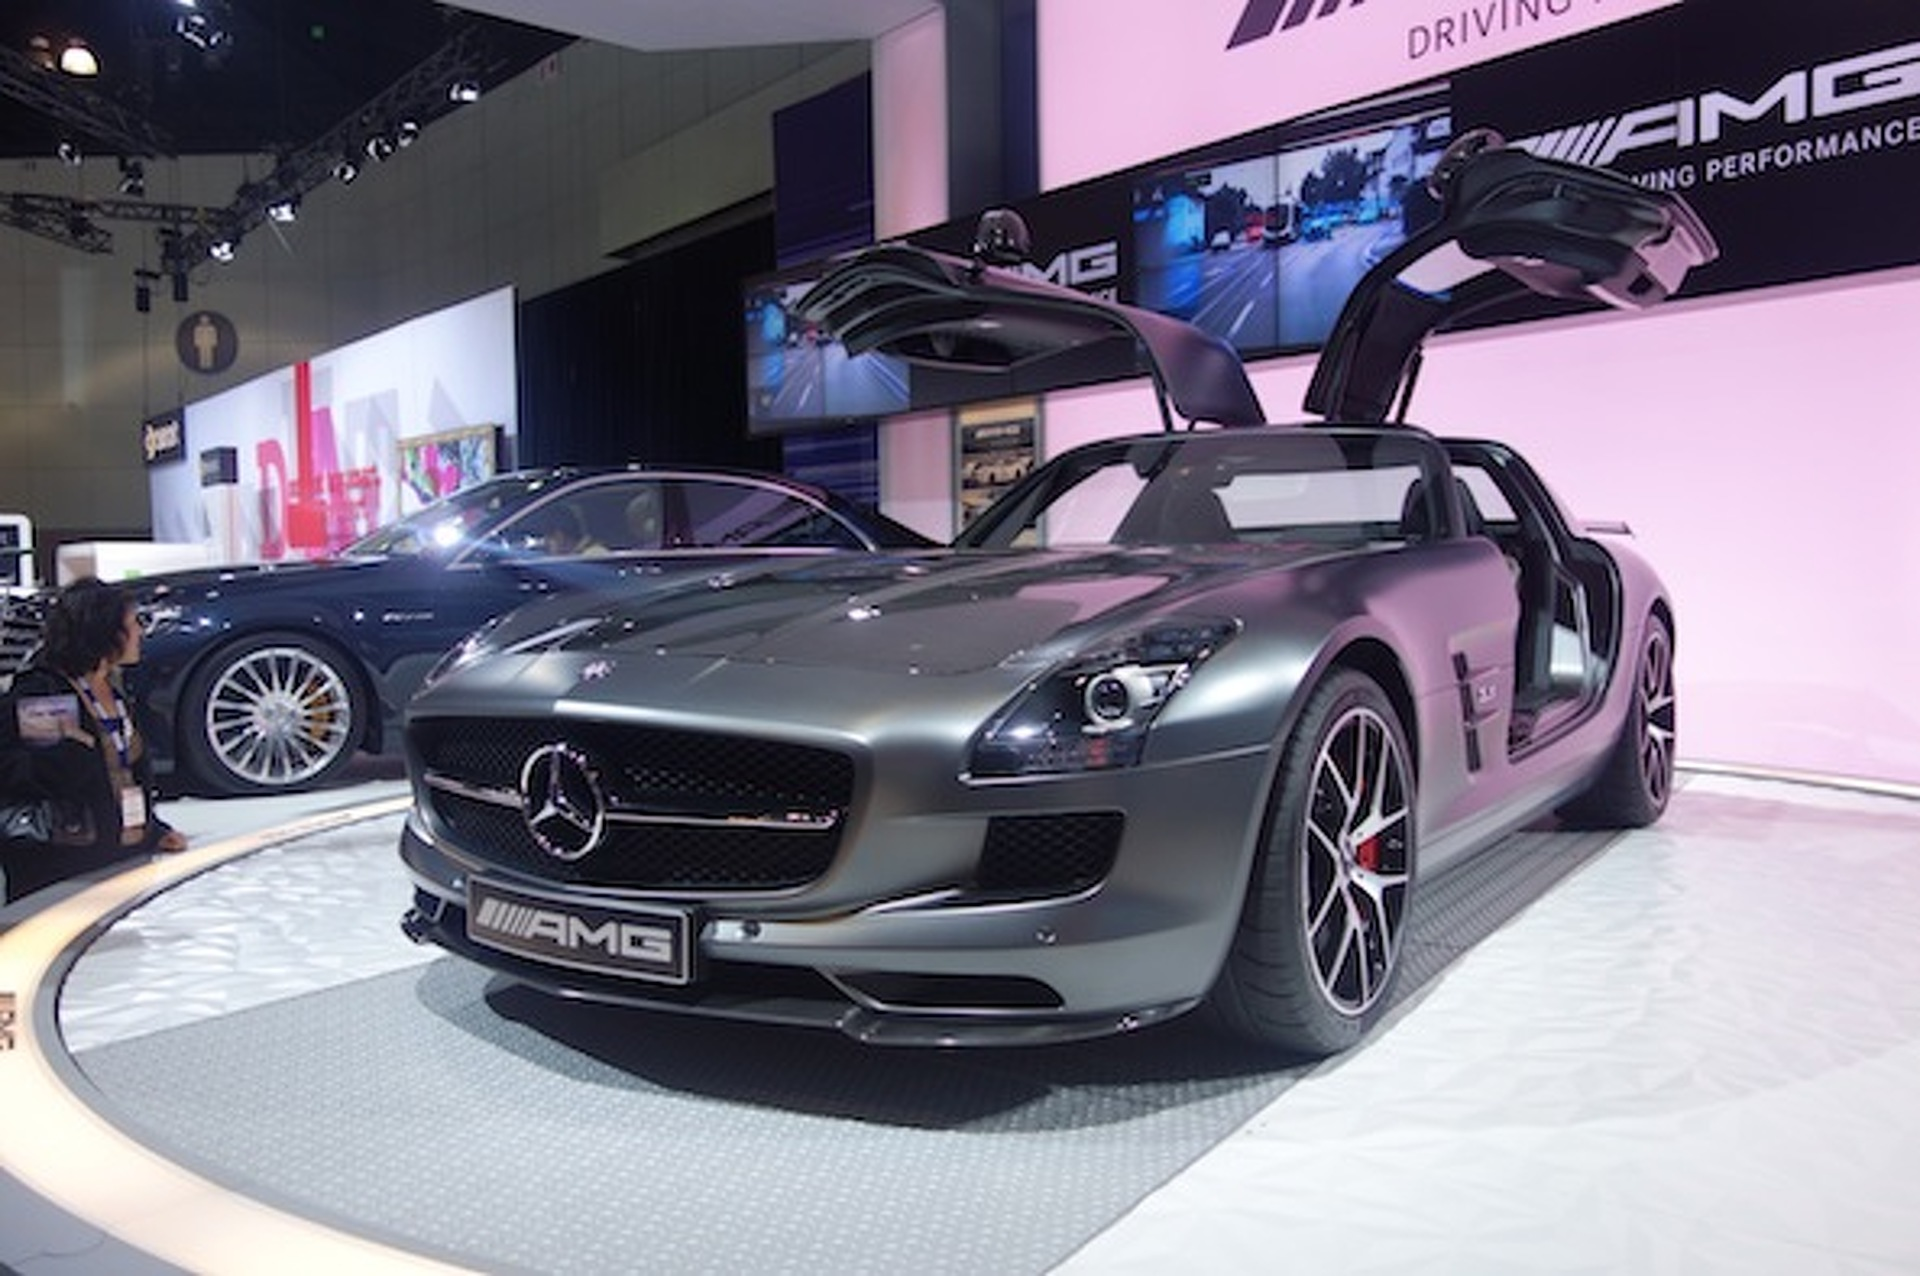 2013 LA Auto Show Recap: Best and Brightest